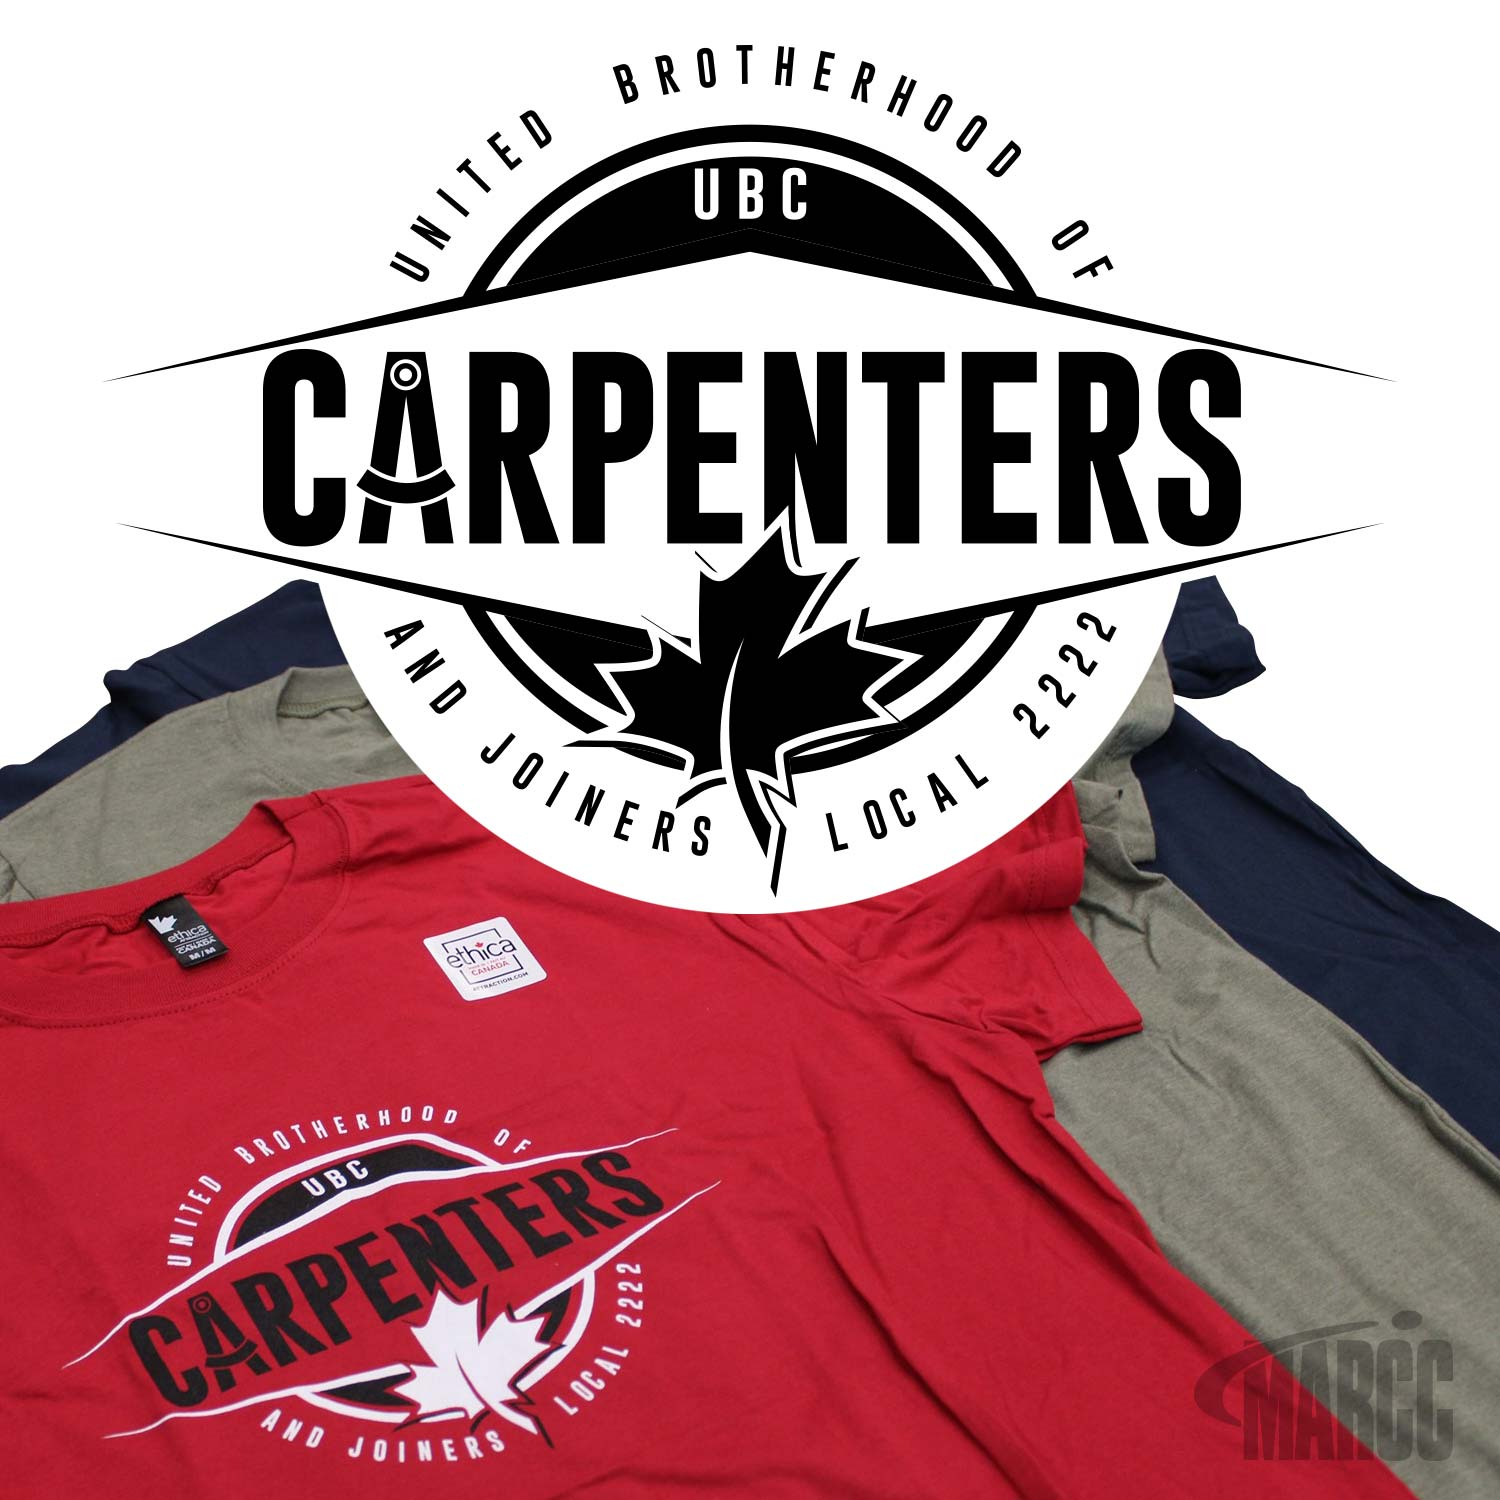 United Brotherhood of Carpenters Tee Design